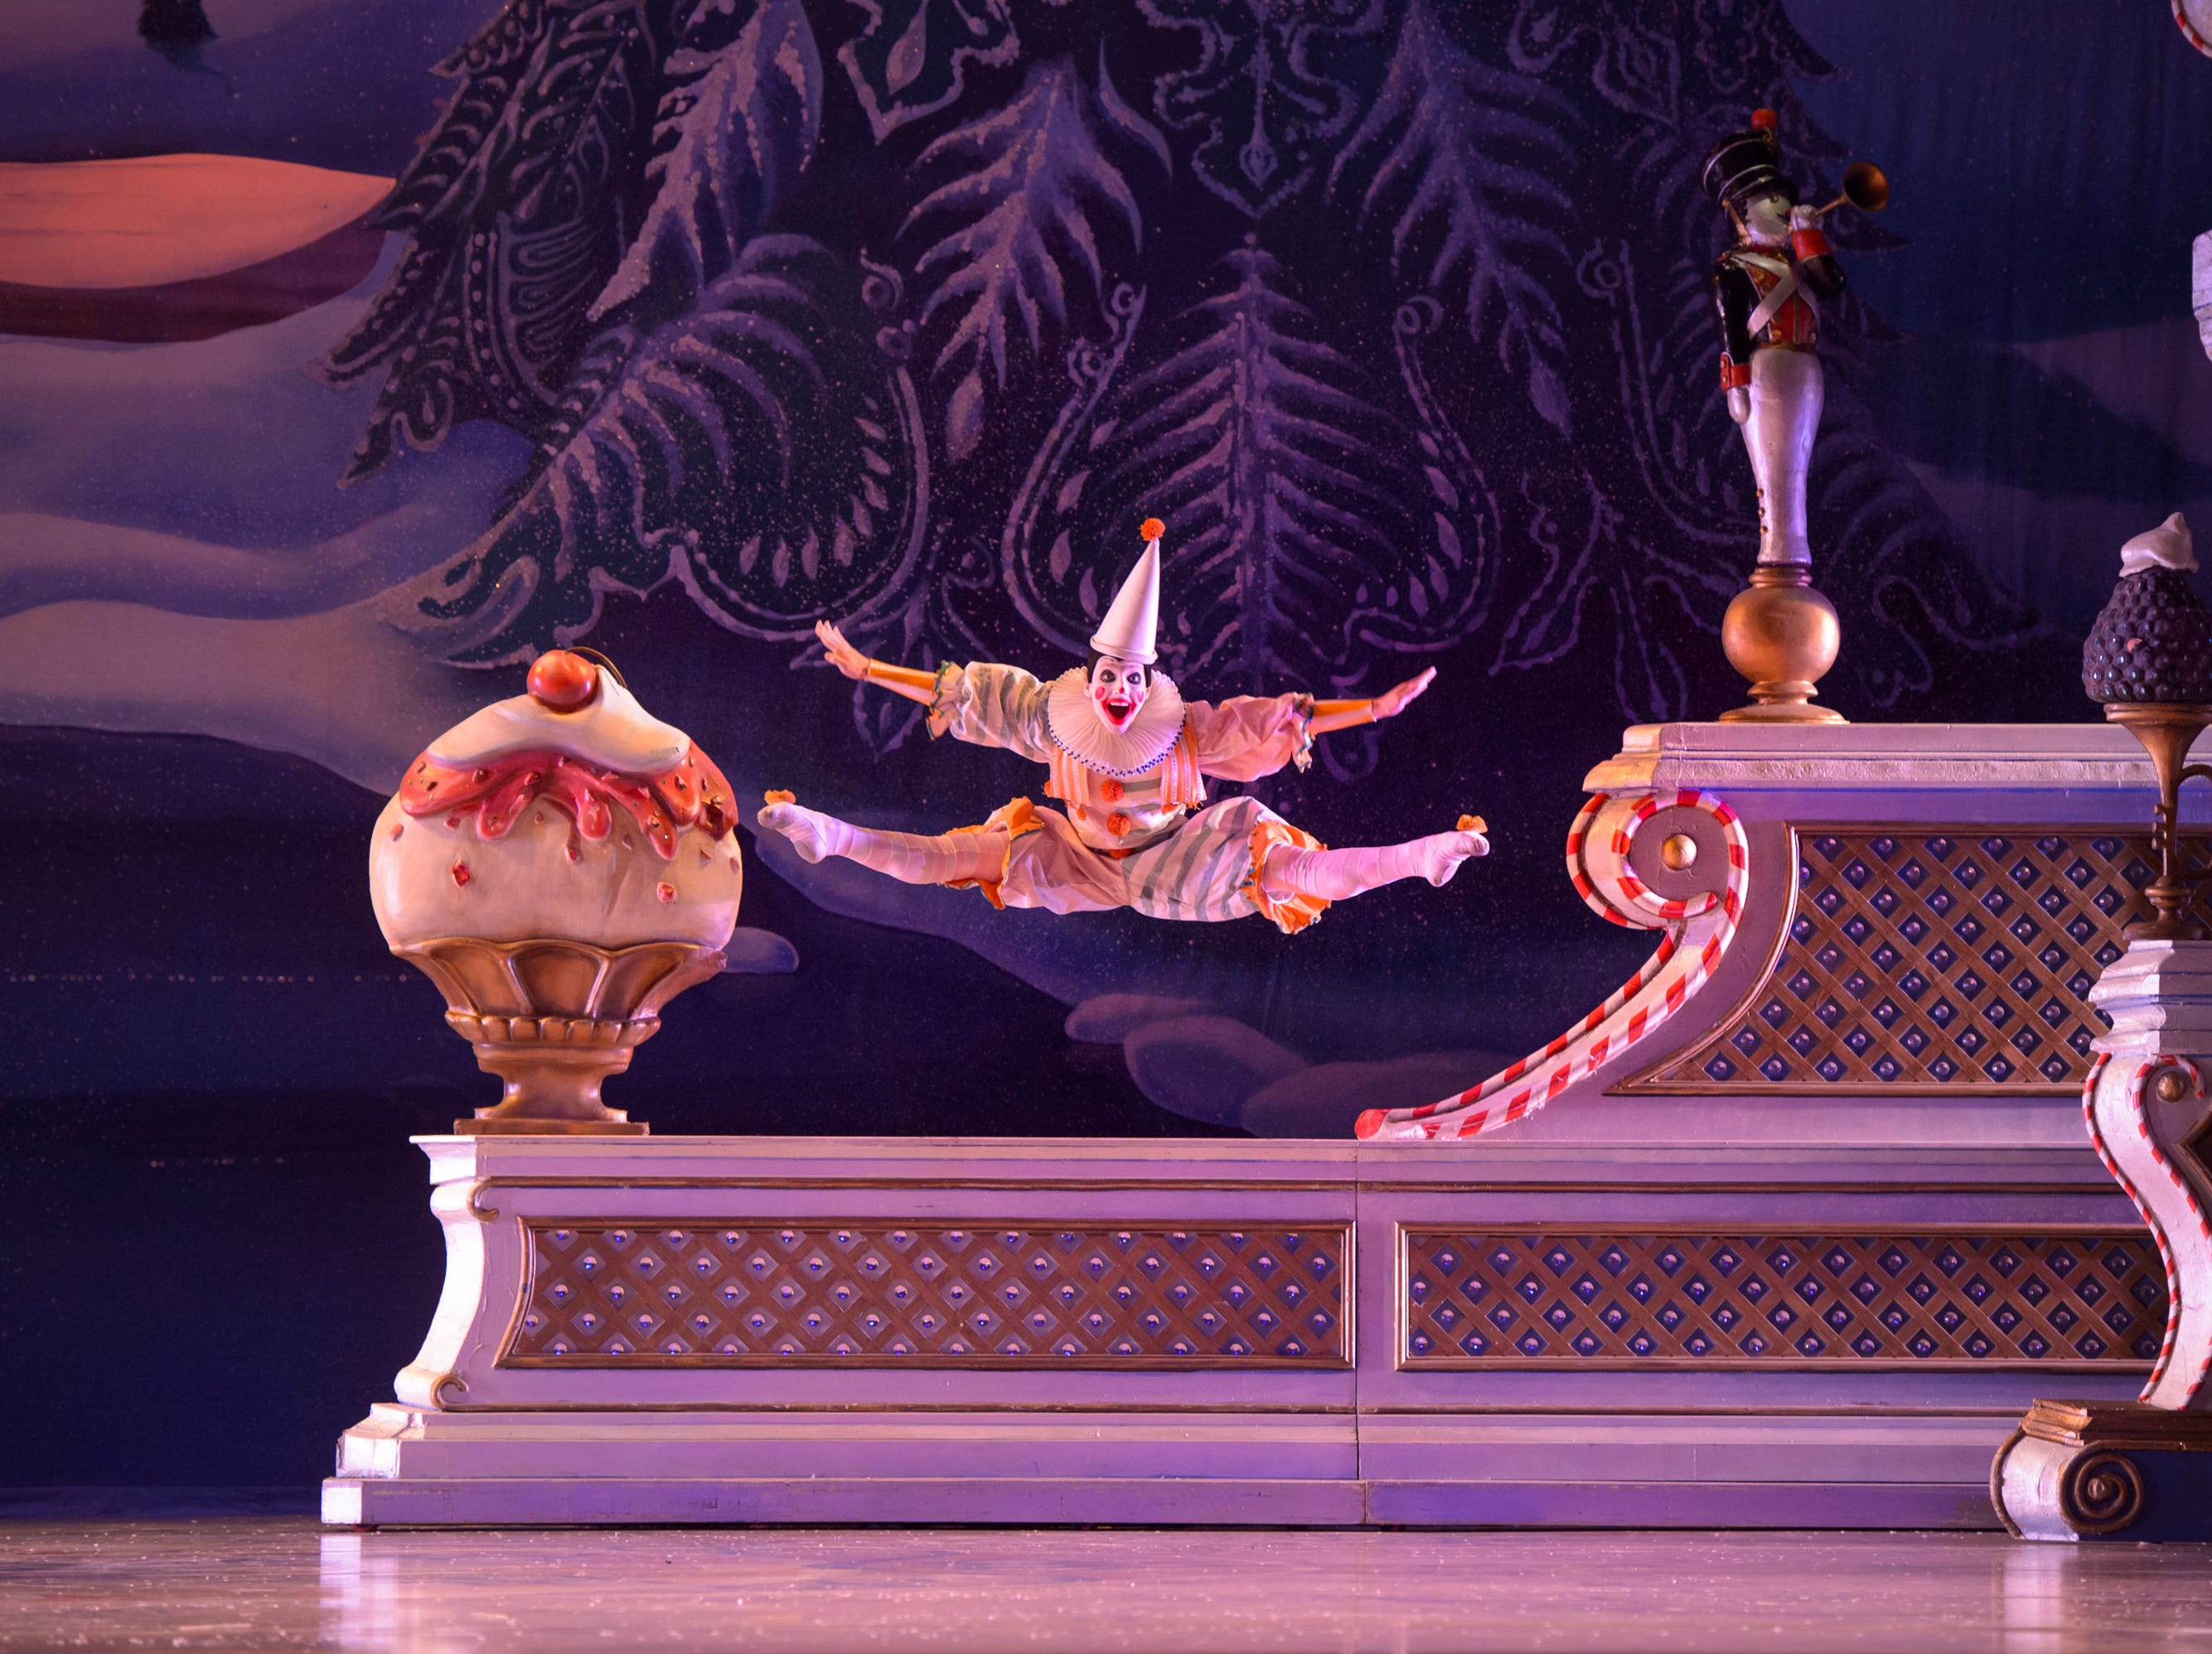 "Justin Geiss approaches escape velocity in Milwaukee Ballet's ""Nutcracker"" through Dec. 26 at the Marcus Center."